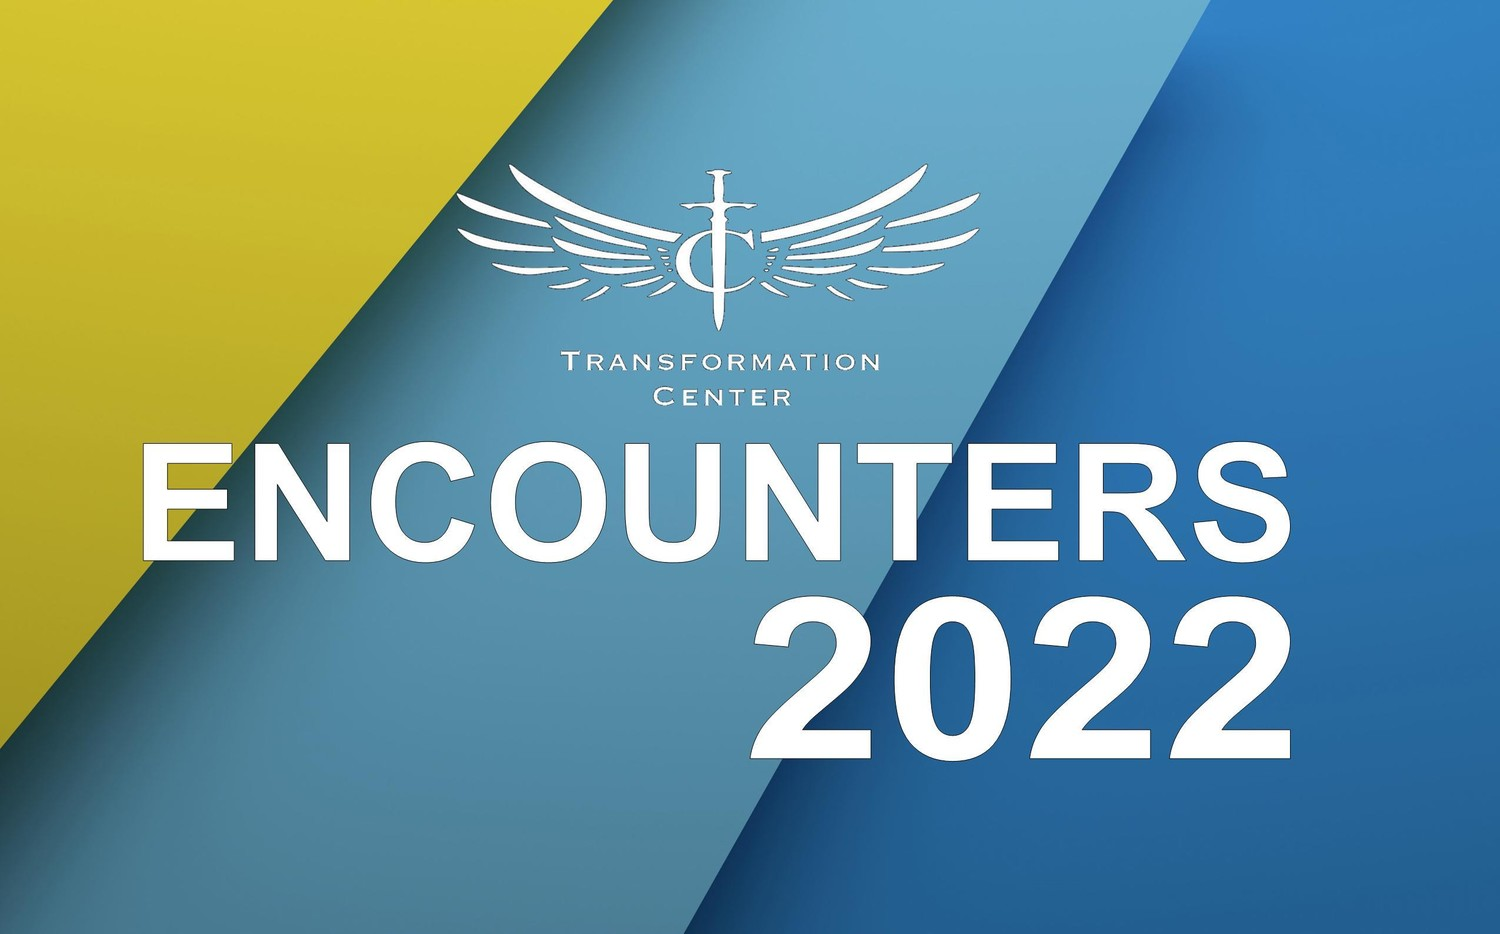 График Инкаунтеров TCCI на 2019 год / Transformation Center Encounters 2019